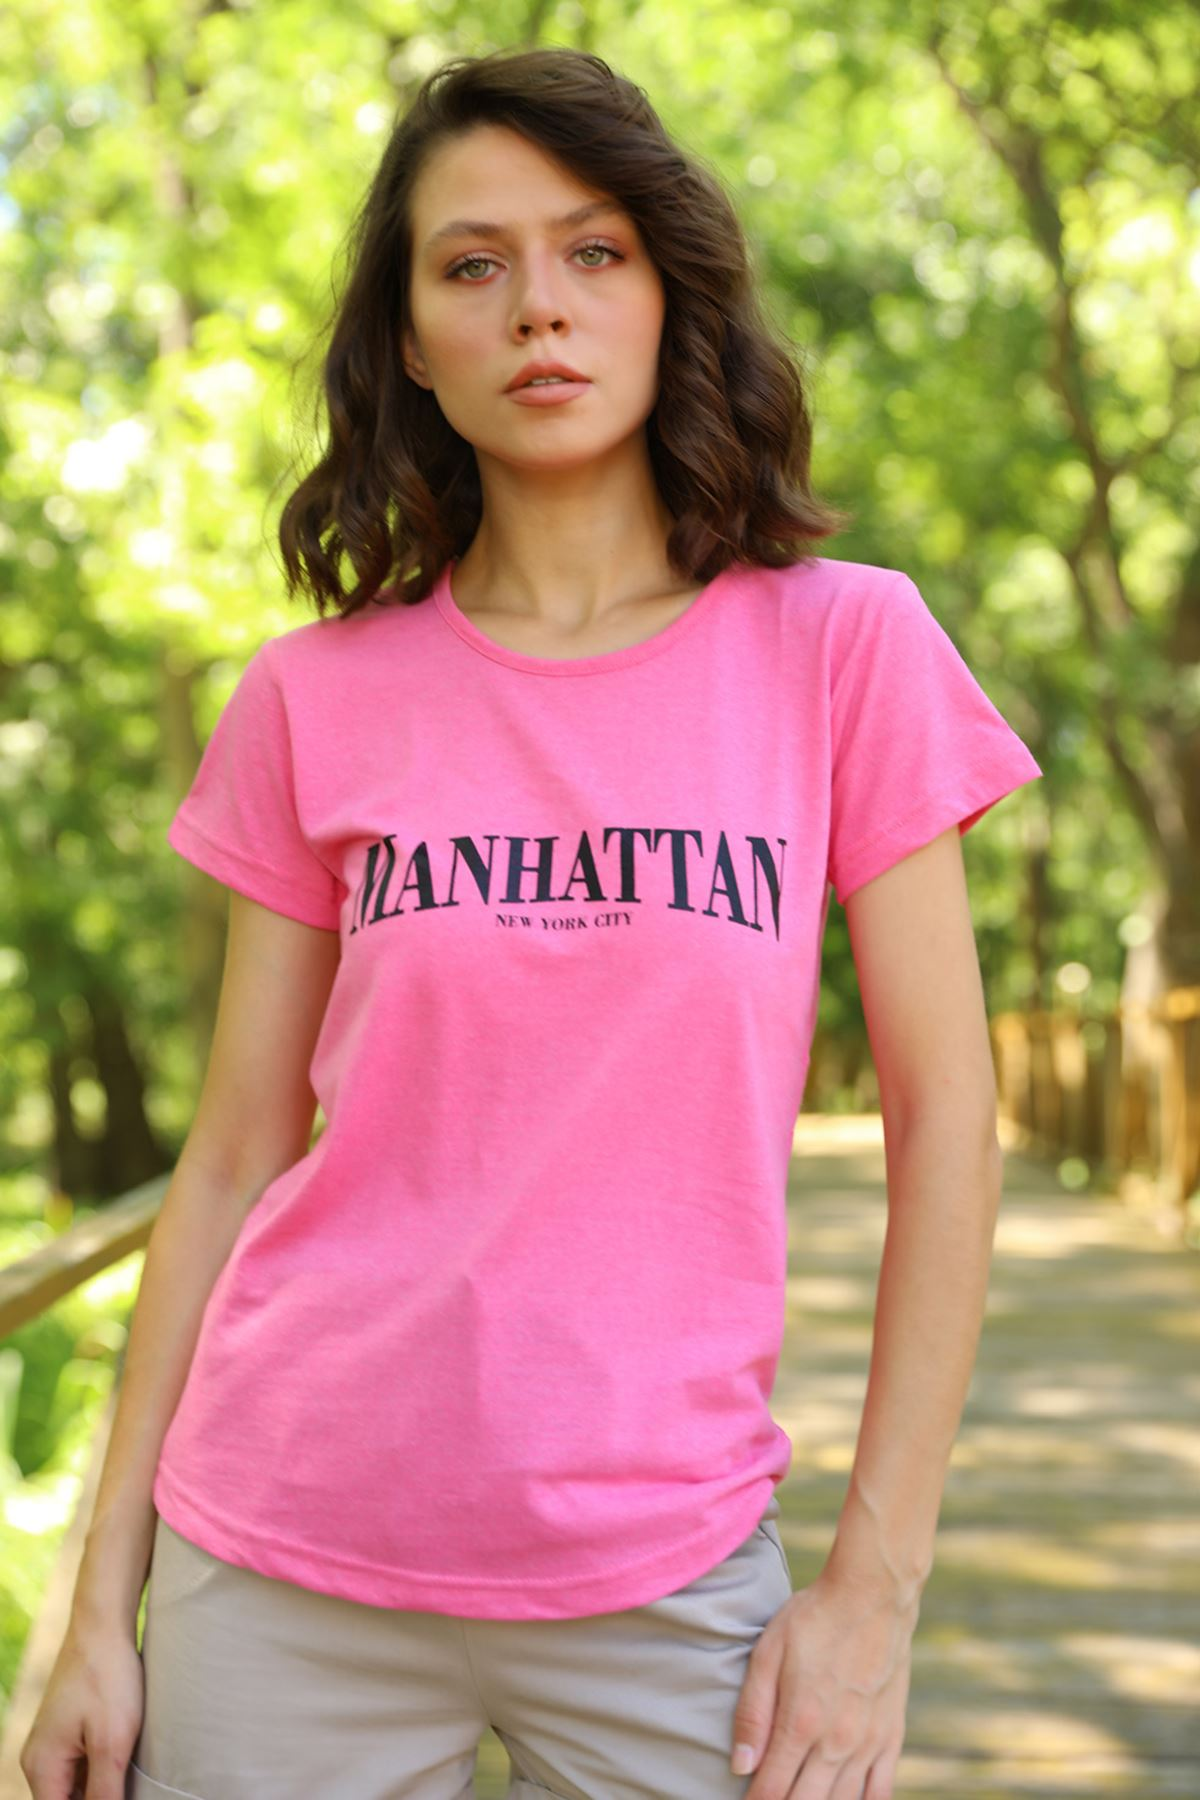 PRT-065 MANHATTAN BASKILI T-SHİRT-PEMBE